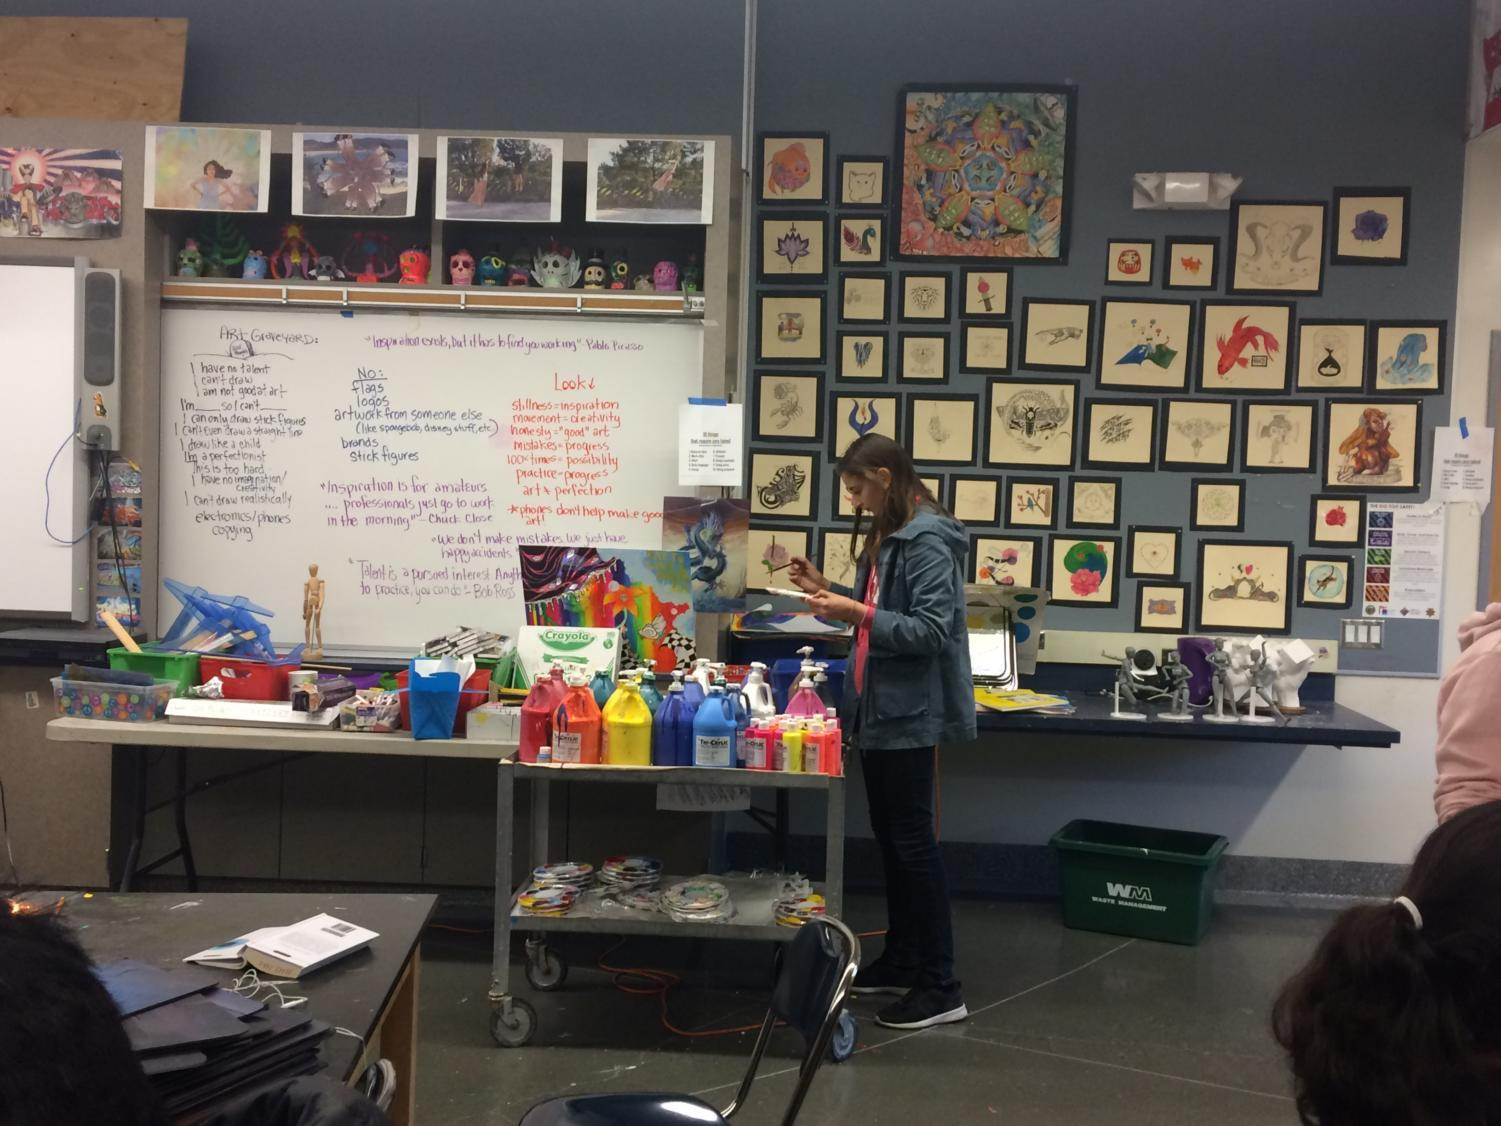 Holly+Bazigian+restocks+her+paint+supply+in+order+to+create+her+candle.